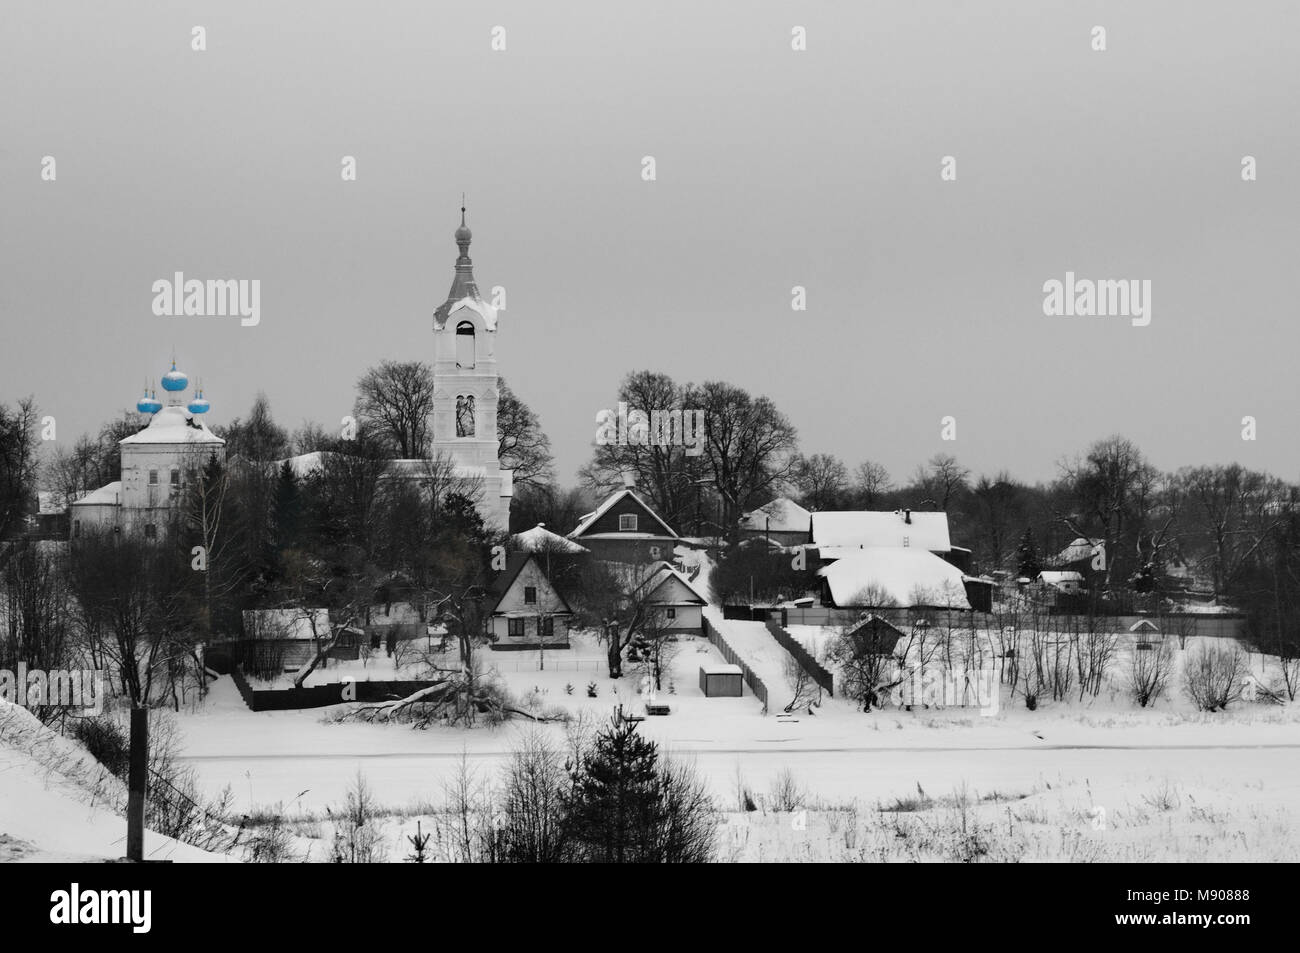 View over a small river on a village with church covered with snow on a gloomy winter day, Porechye village, Nerl - Stock Image